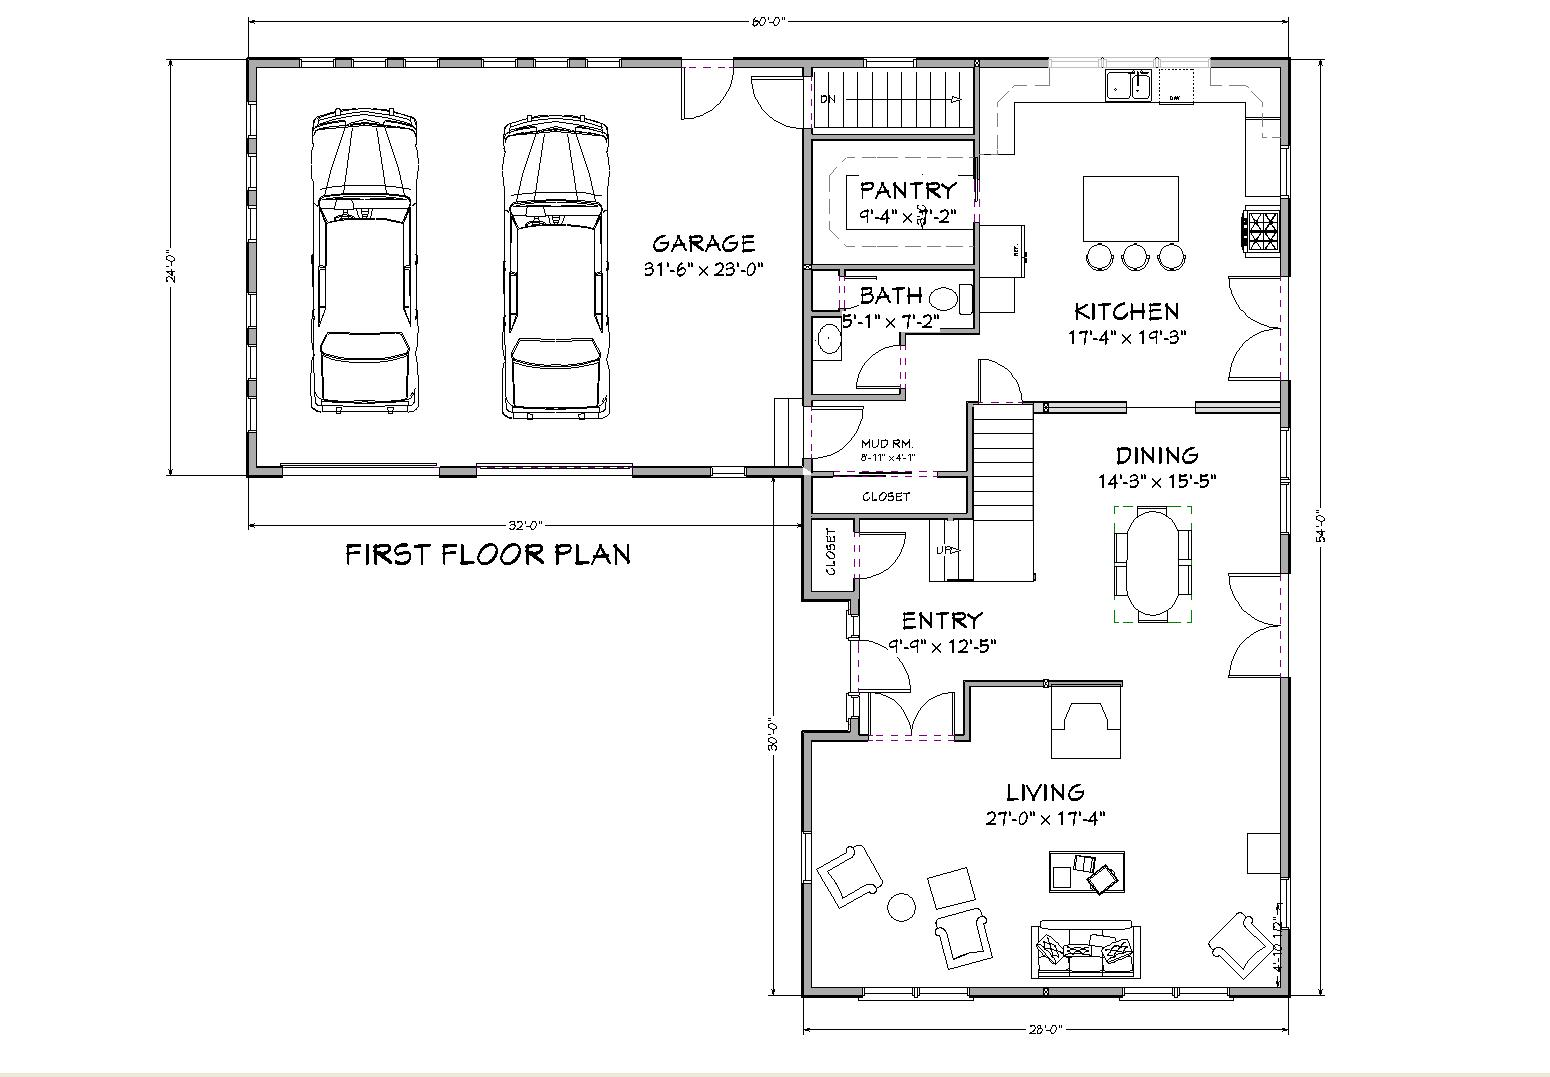 3000 square feet house plans 5000 square feet house small for 5000 sq ft house plans in india